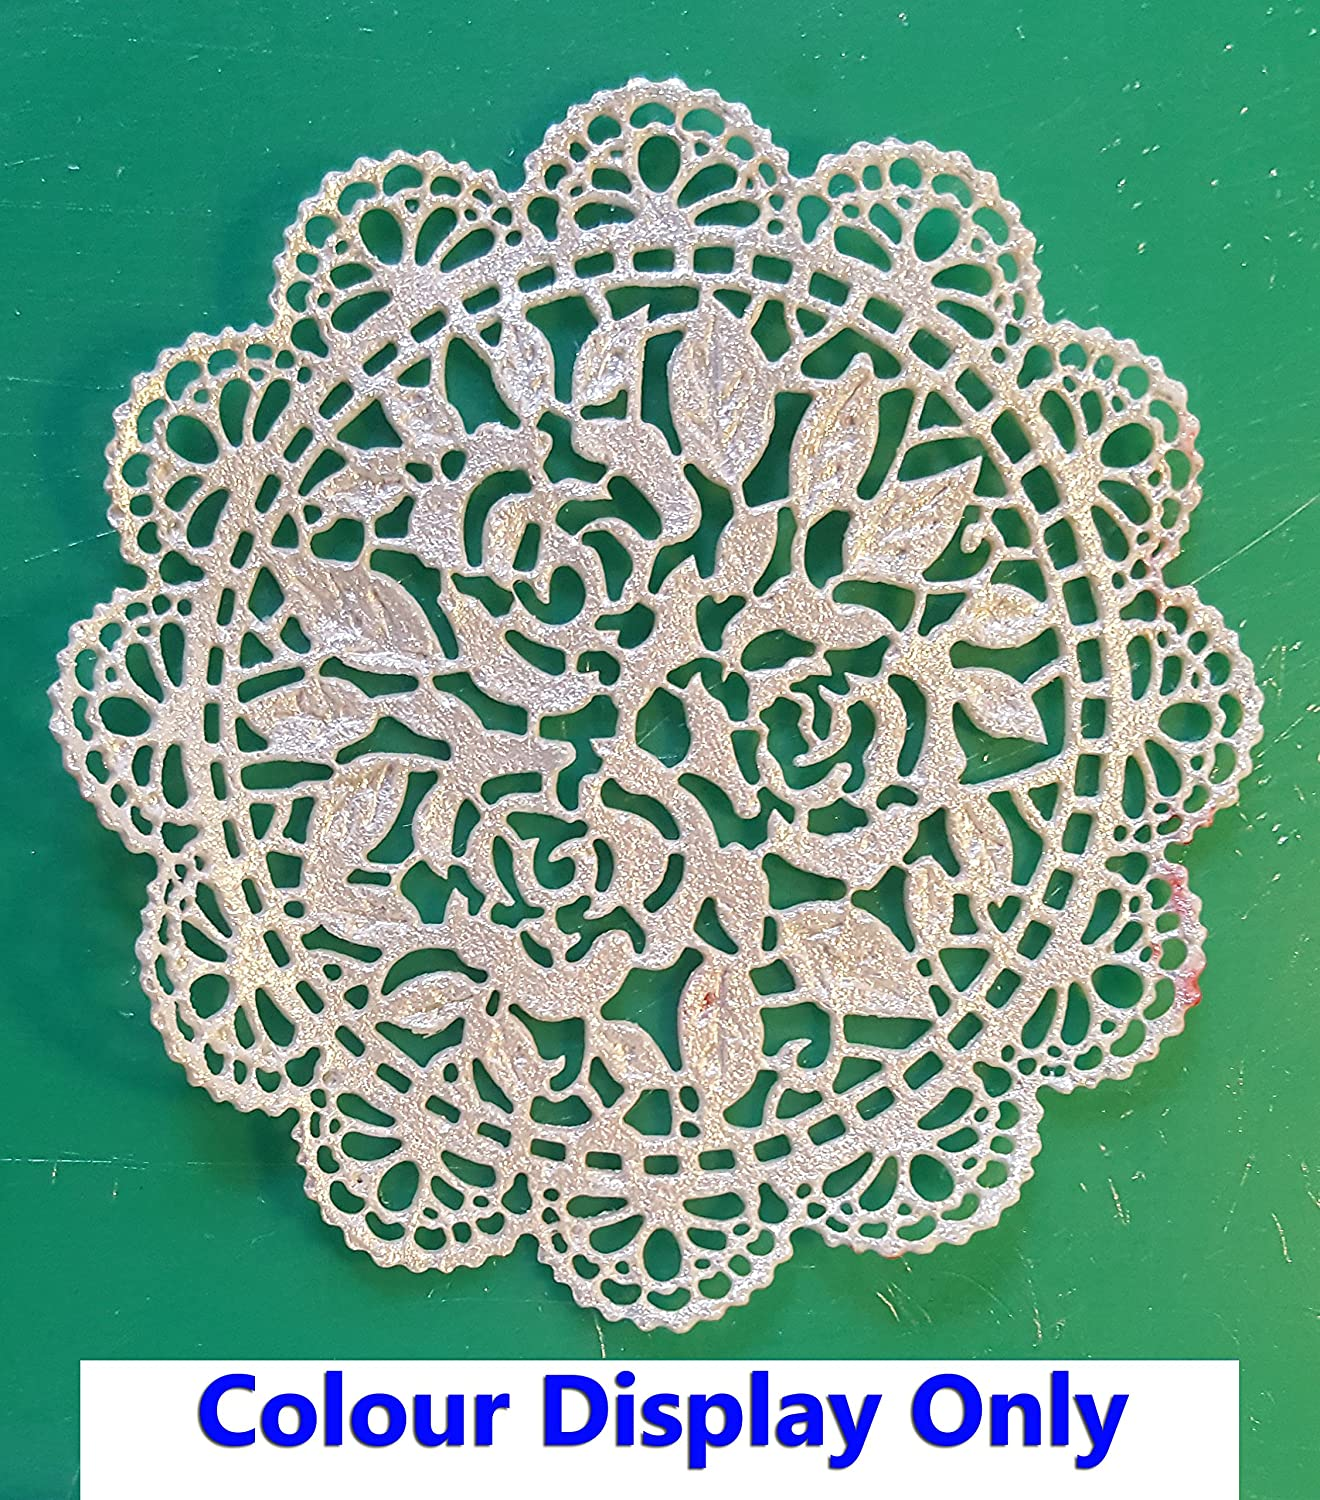 1 x Simply Heaven Edible Ready Made Cake Lace 40 Colours Made from mat 29 Free First Class Postage Black